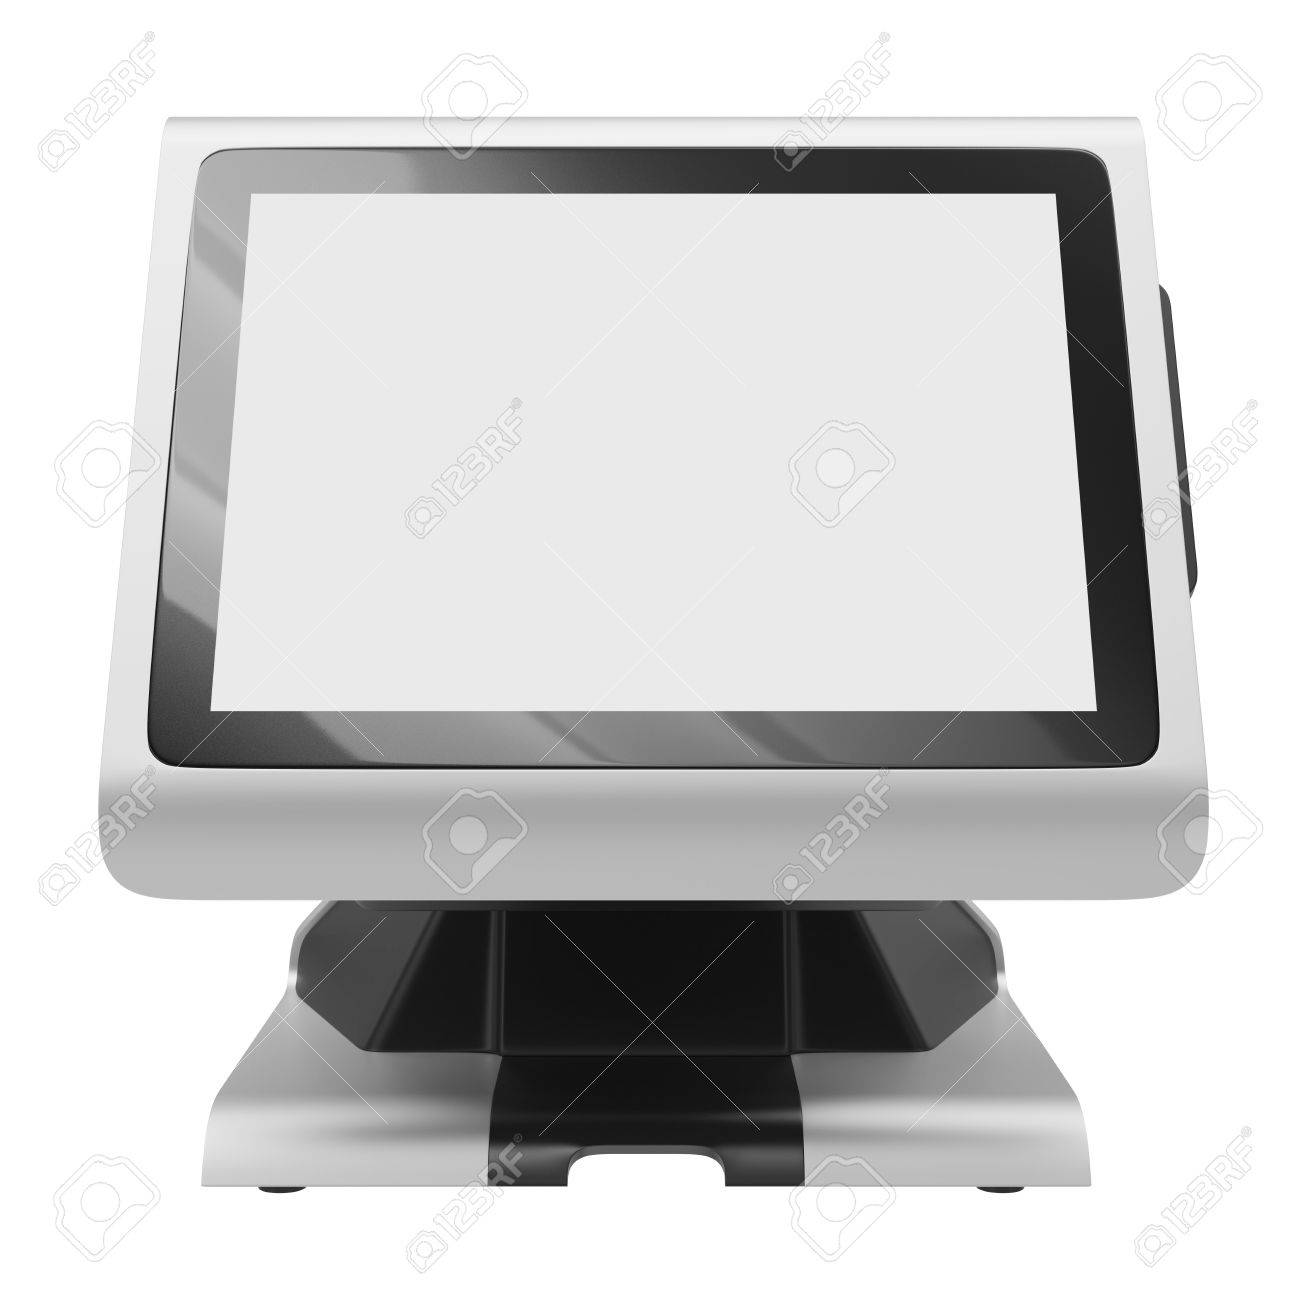 Large Touch Screen >> Large Touch Screen Terminal Bank Touchscreen For Retsepshona